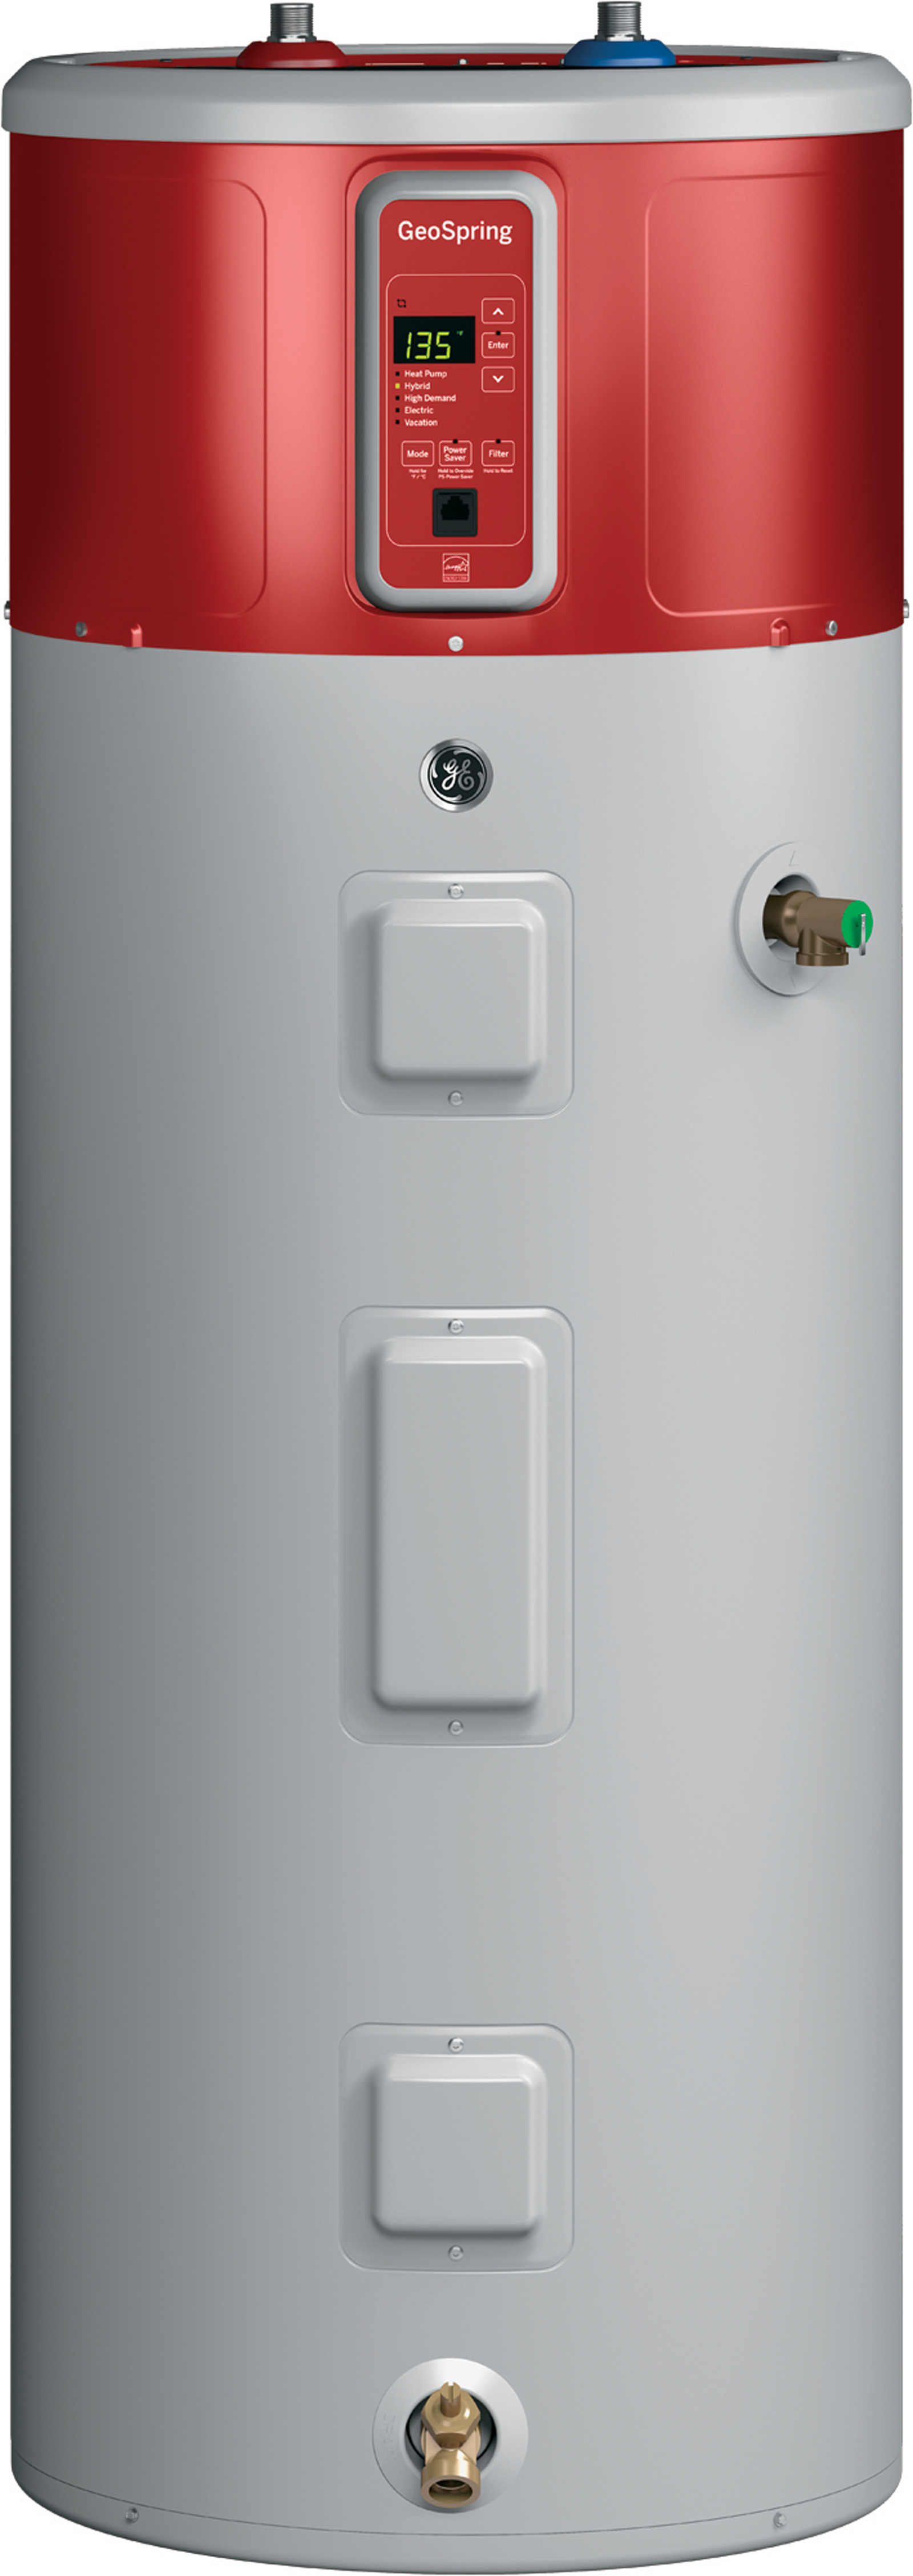 GE Appliances GEH50DFEJSR GeoSpring™ Hybrid Electric Water Heater